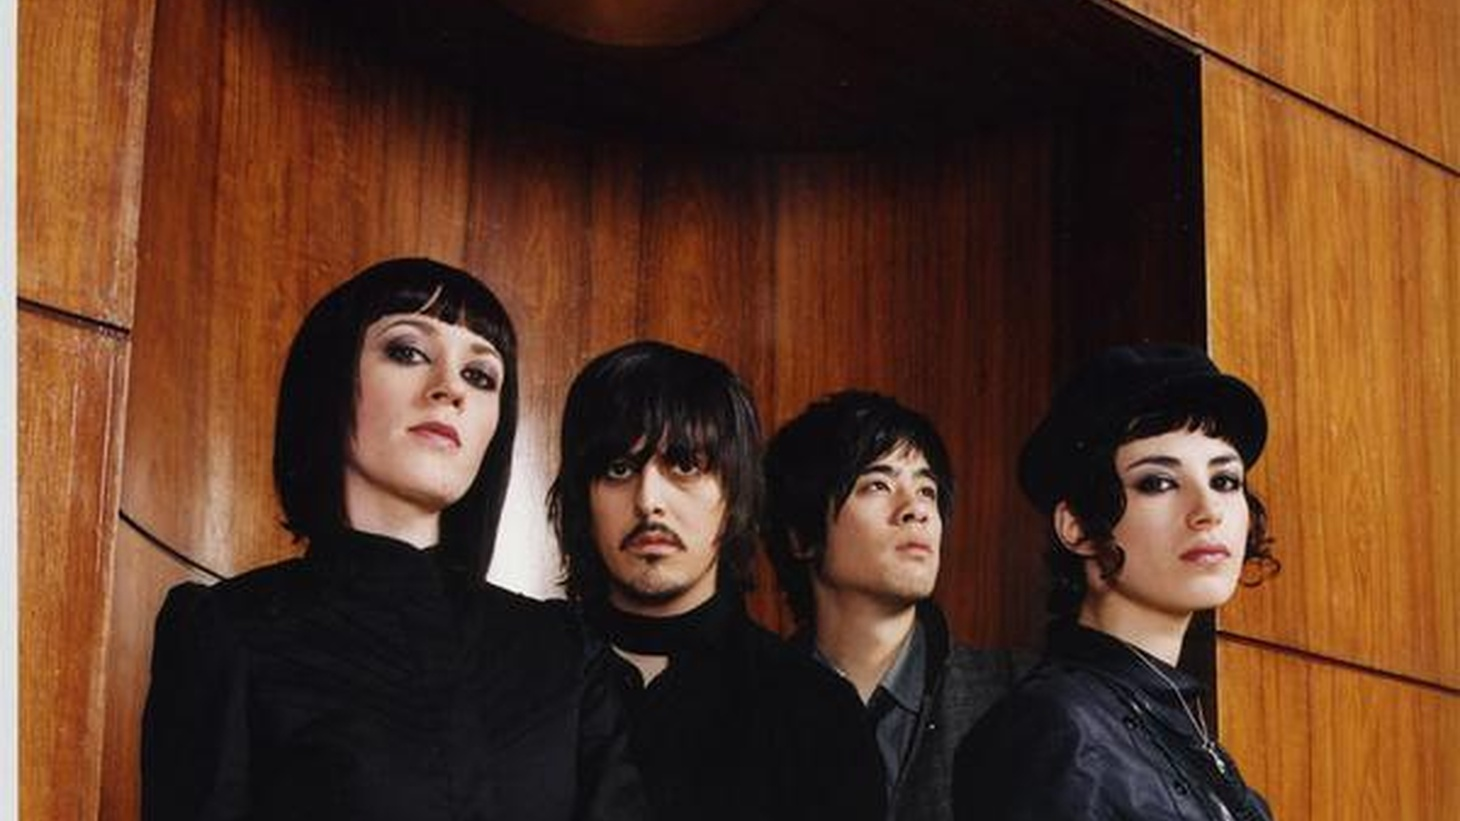 Ladytron bring an electro new-wave order to Morning Becomes Eclectic at 11:15am.